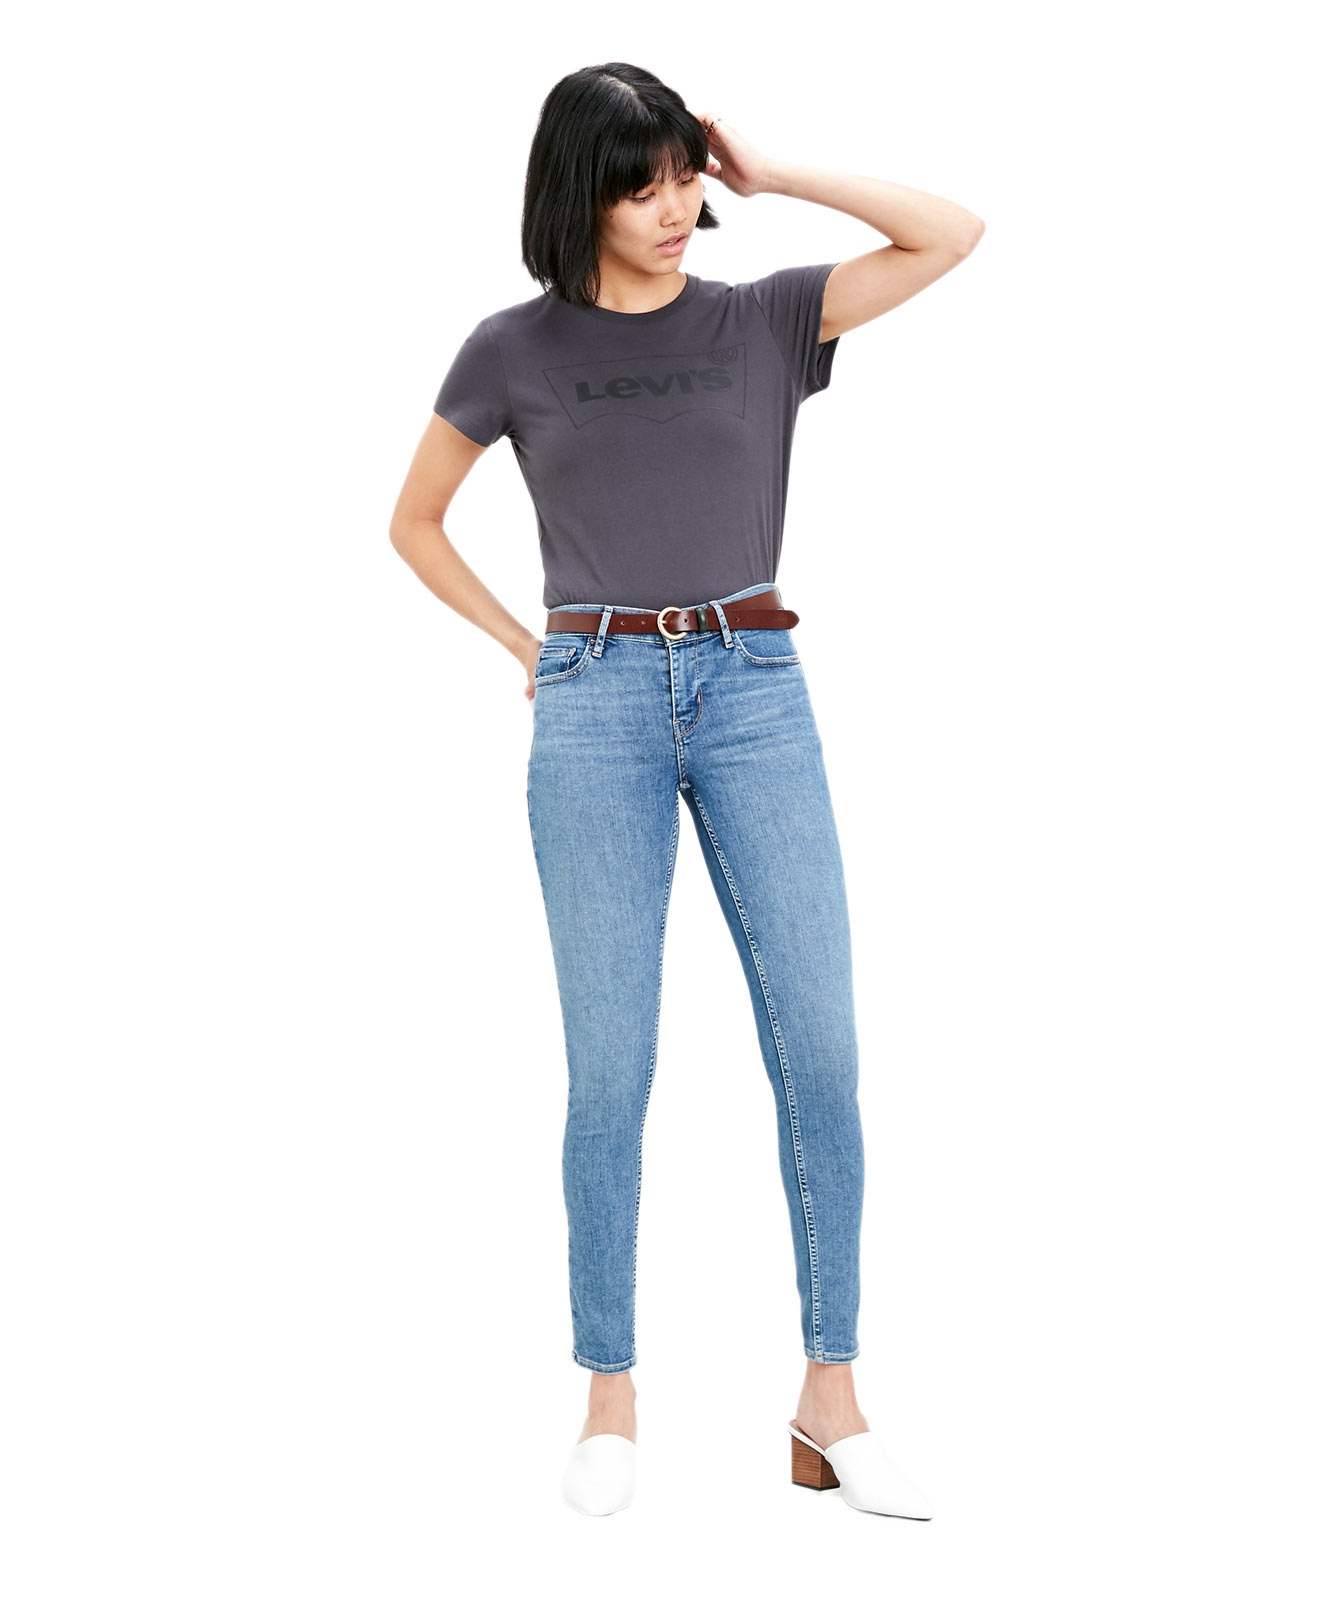 Hosen - Levi's Jeans Damen Super Skinny 710 in Velocity Upbeat  - Onlineshop Jeans Meile